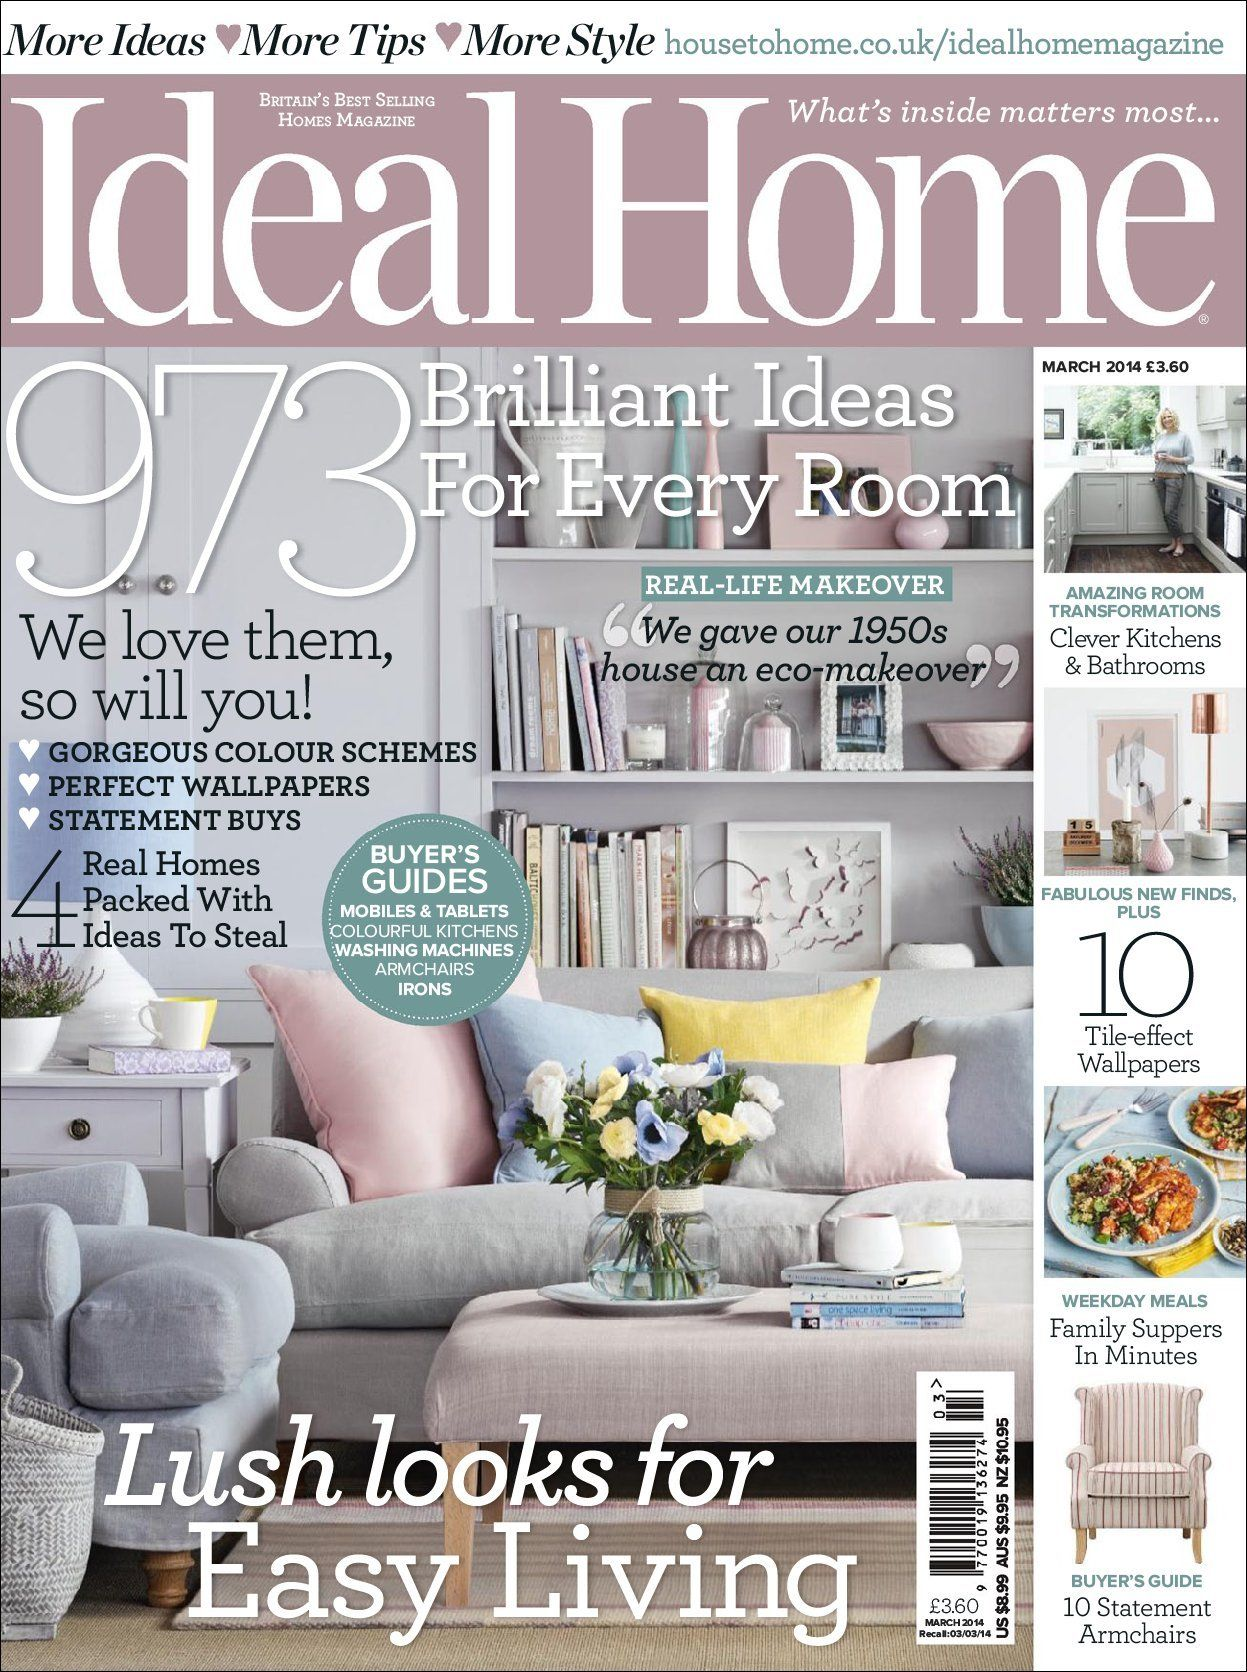 March 01, 2014 Issue Of Ideal Home